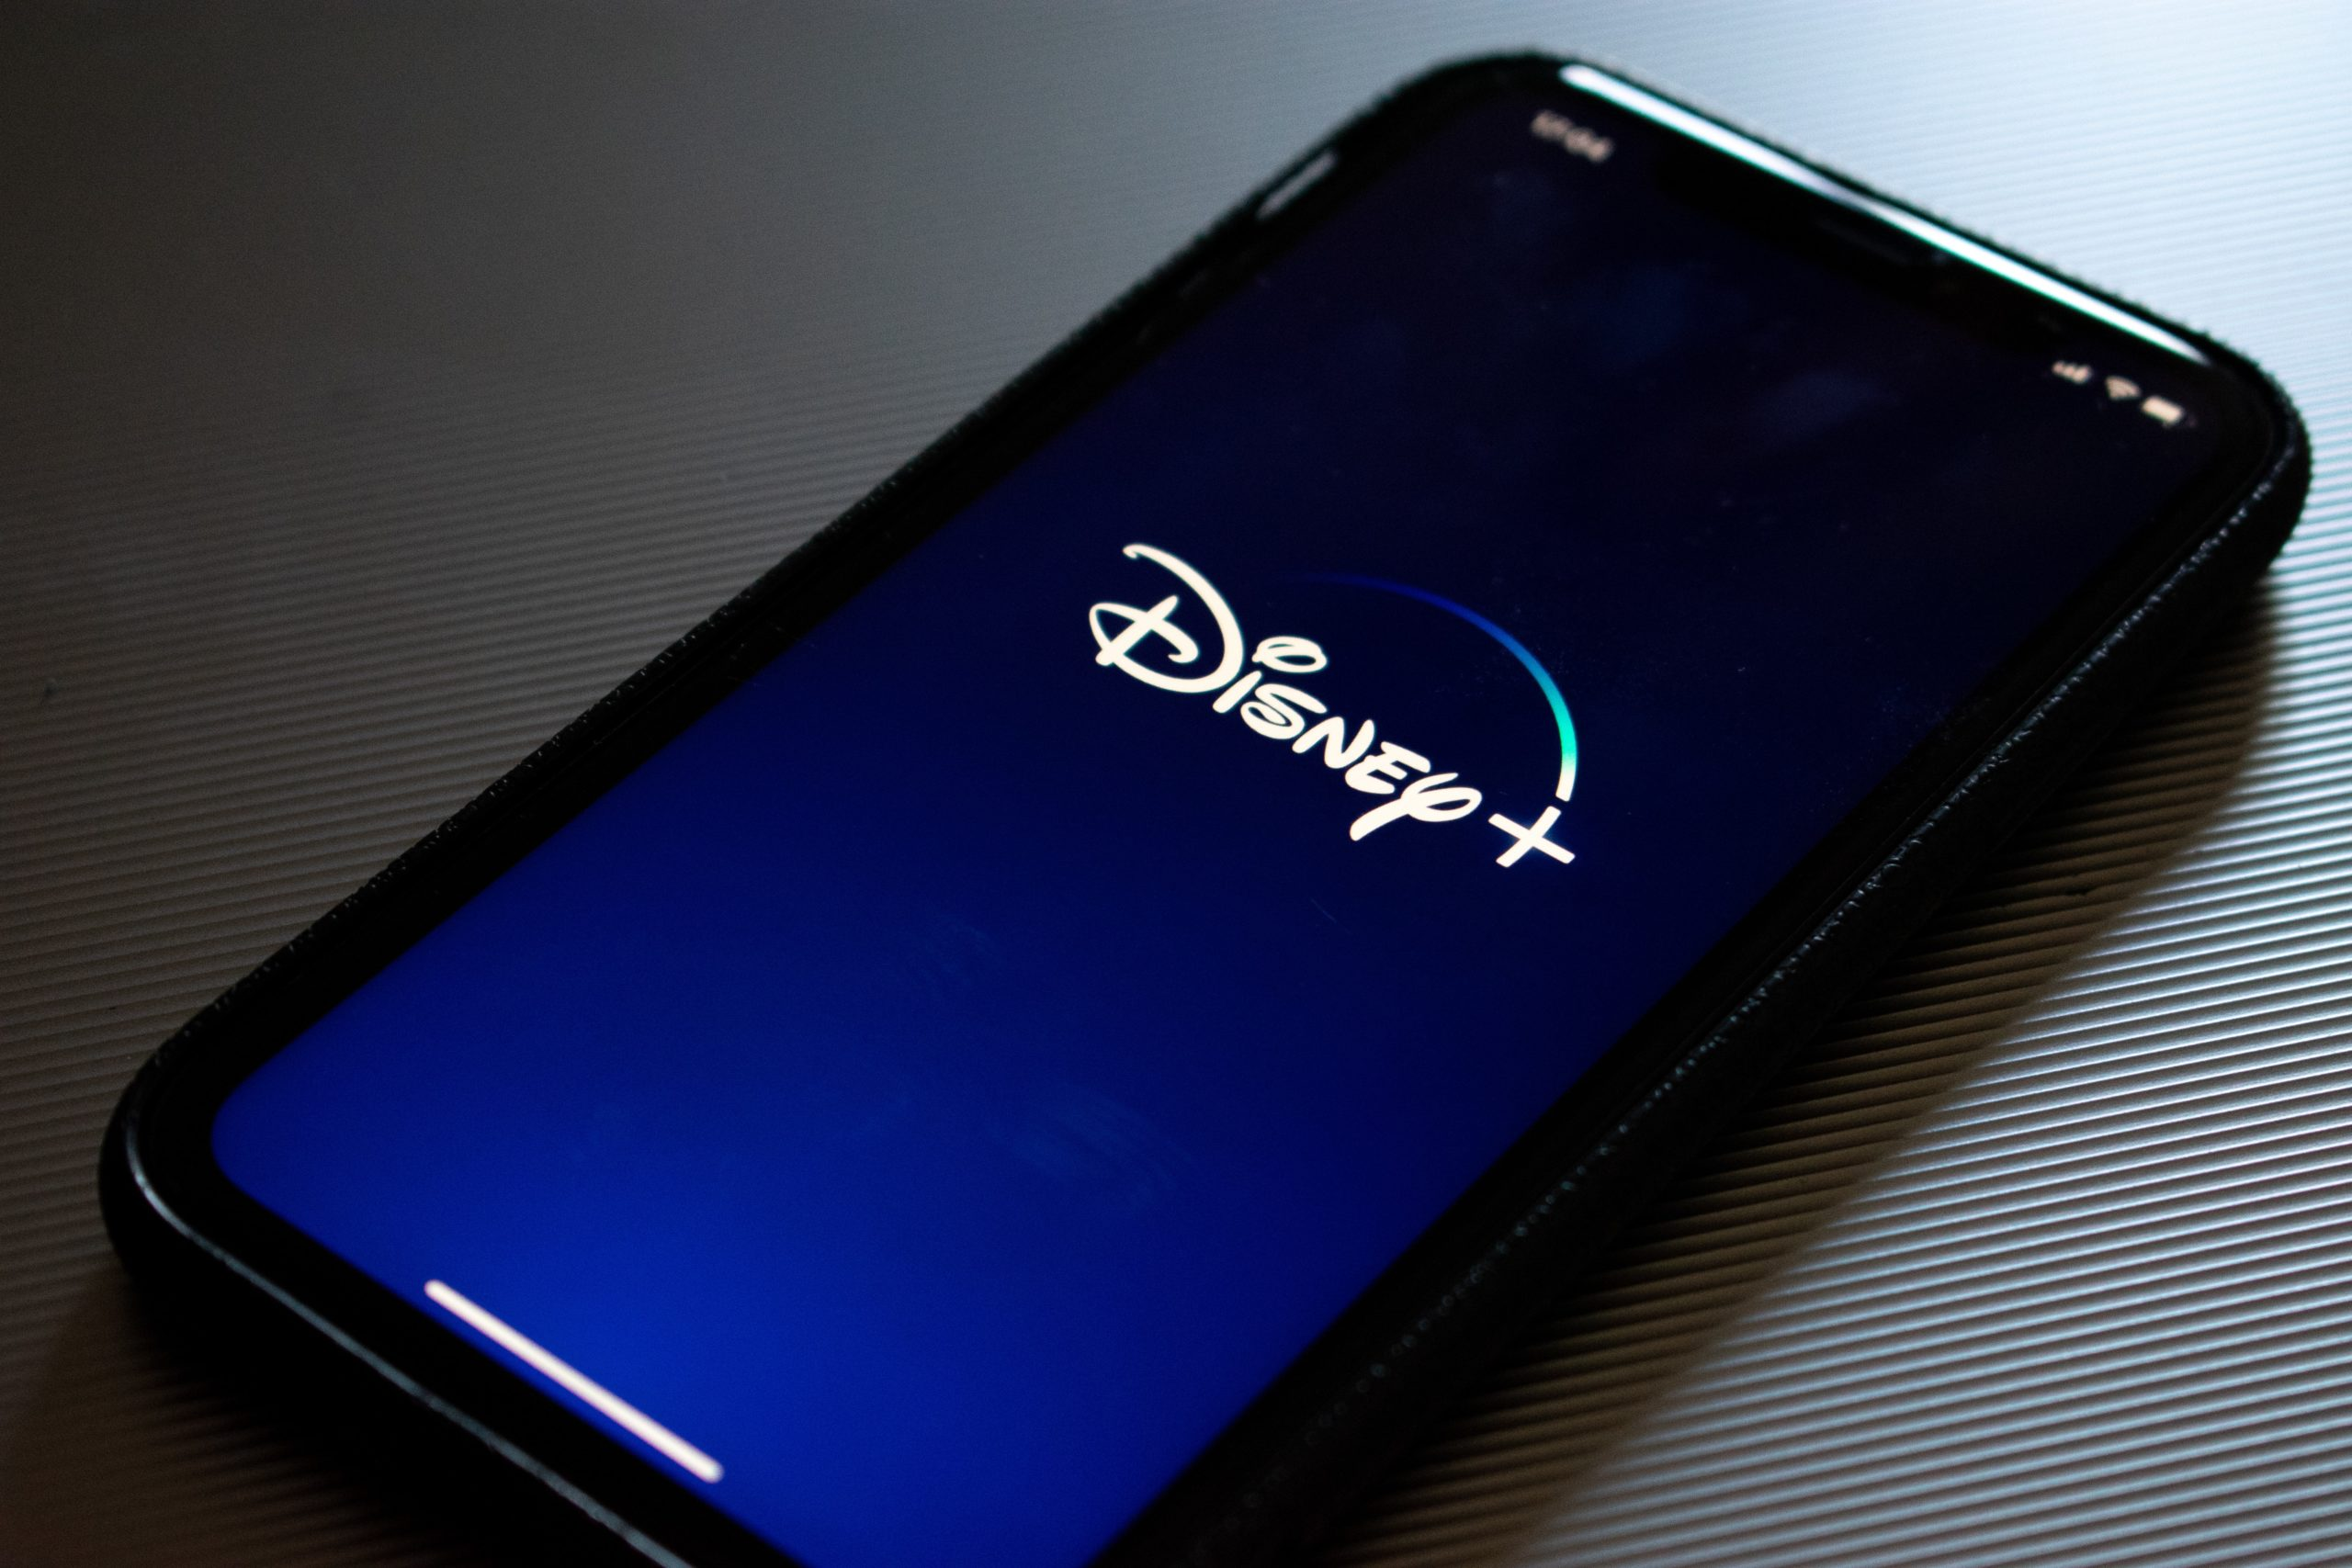 product launch checklist showcased with disney app on phone